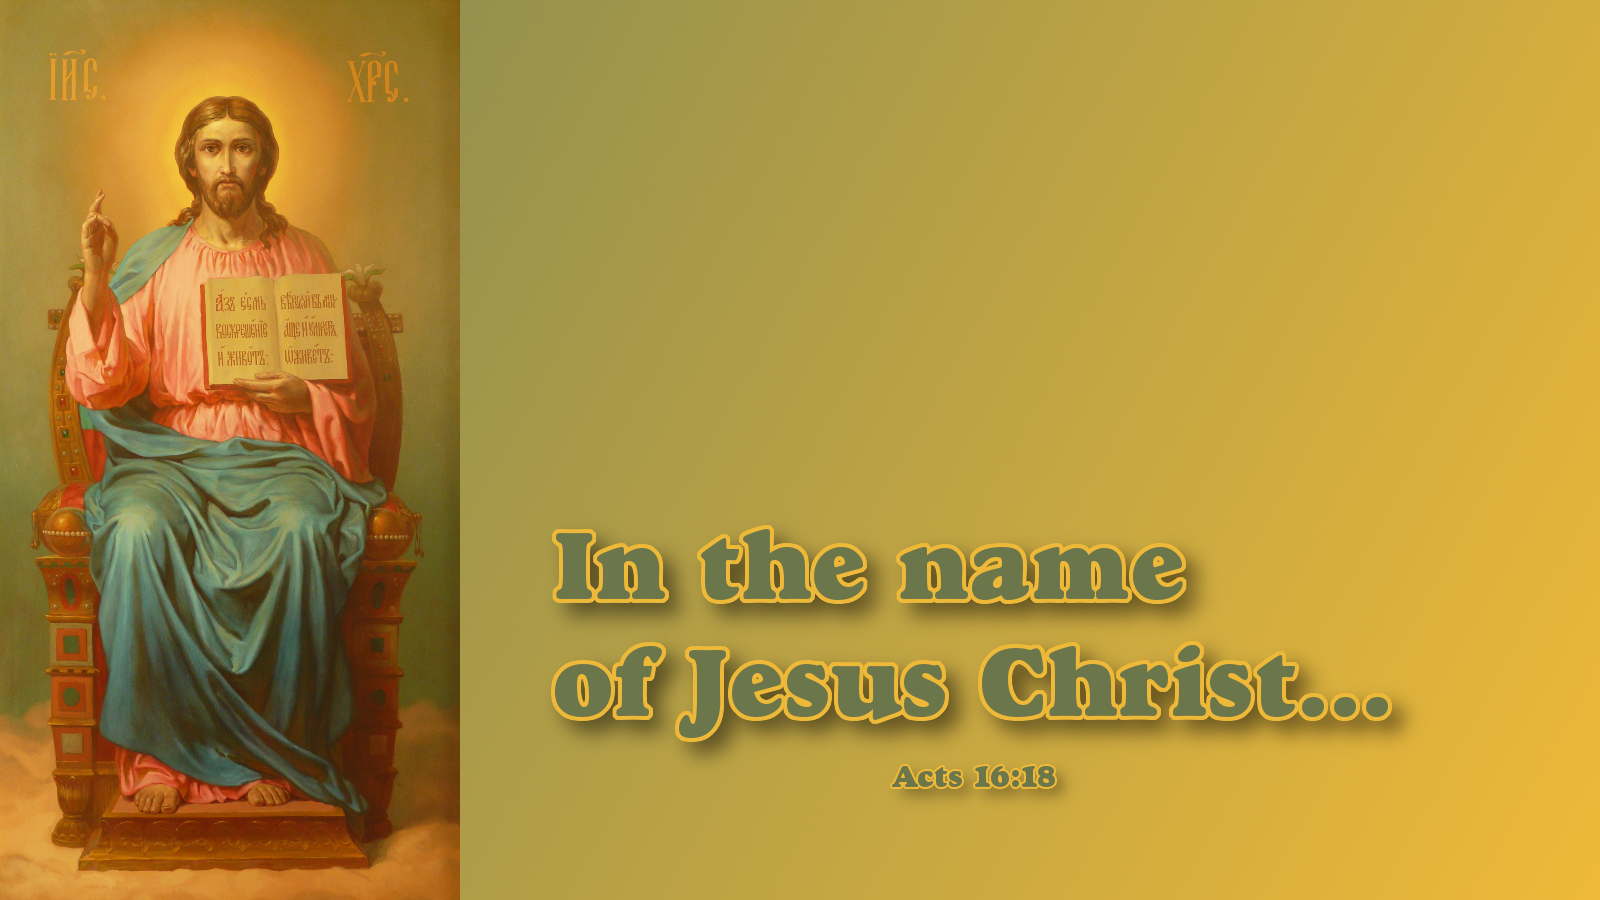 acts16-18